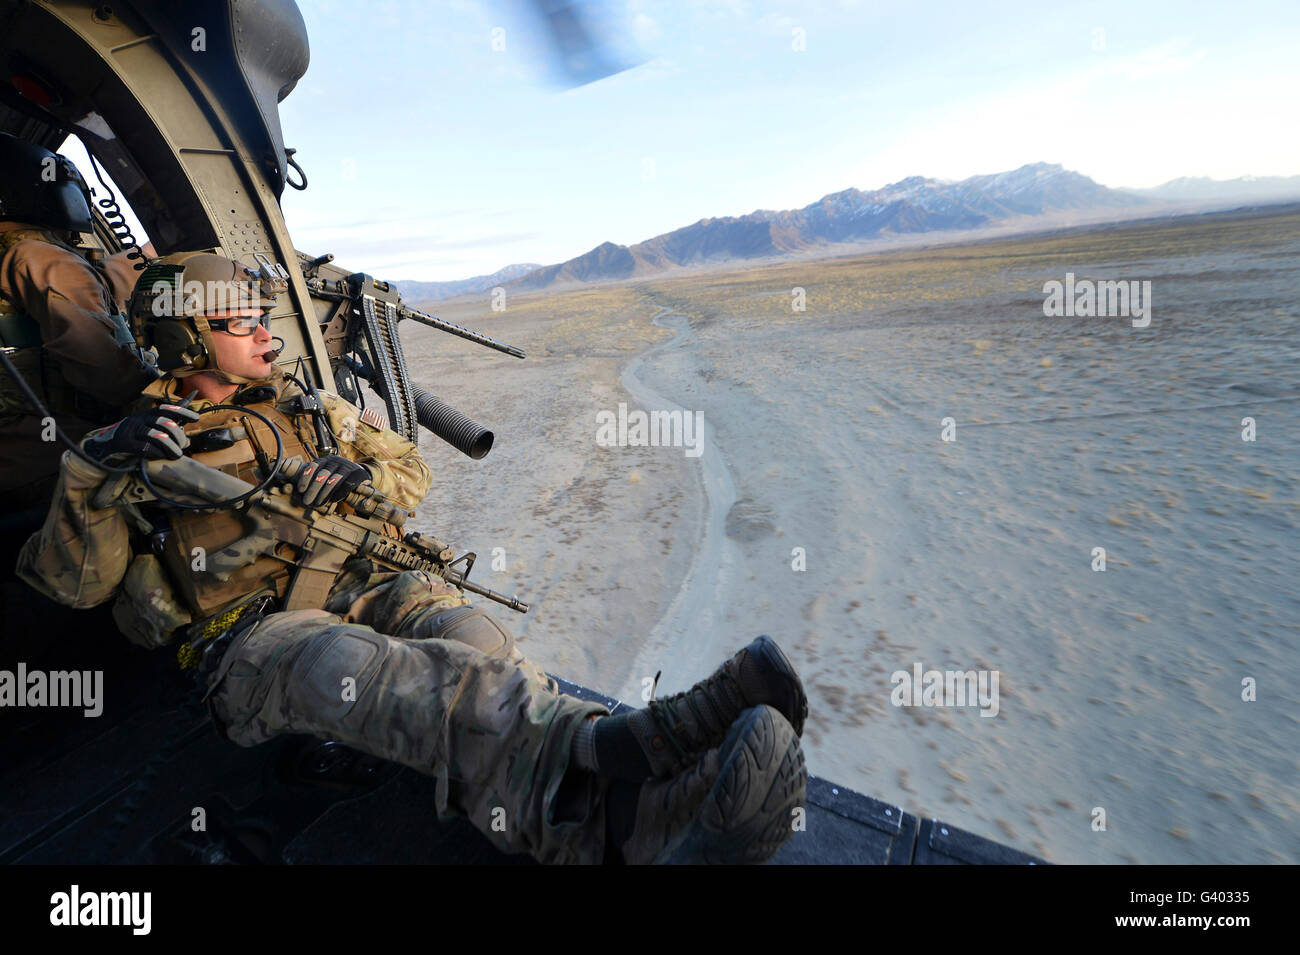 Pararescueman watches the terrain during a training mission in Afghanistan. - Stock Image